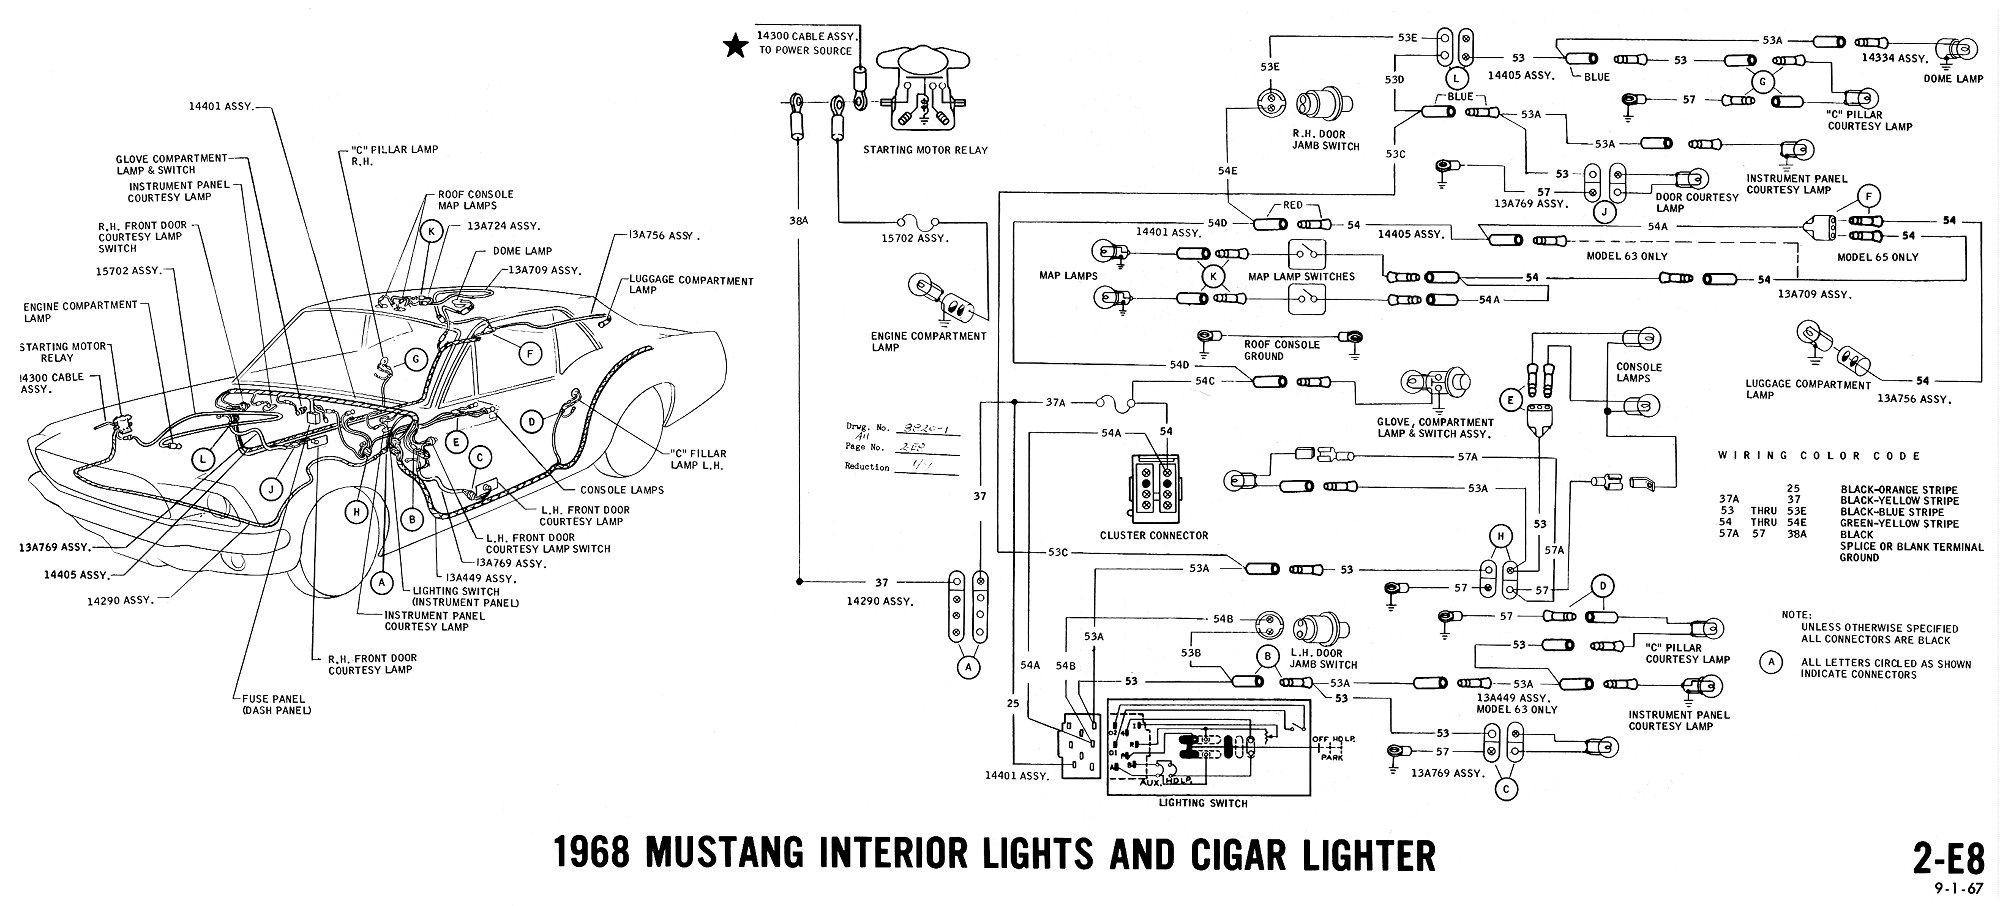 1968 mustang wiring diagrams evolving software rh peterfranza com wiring diagram for 68 mustang 66 mustang wiring diagram free